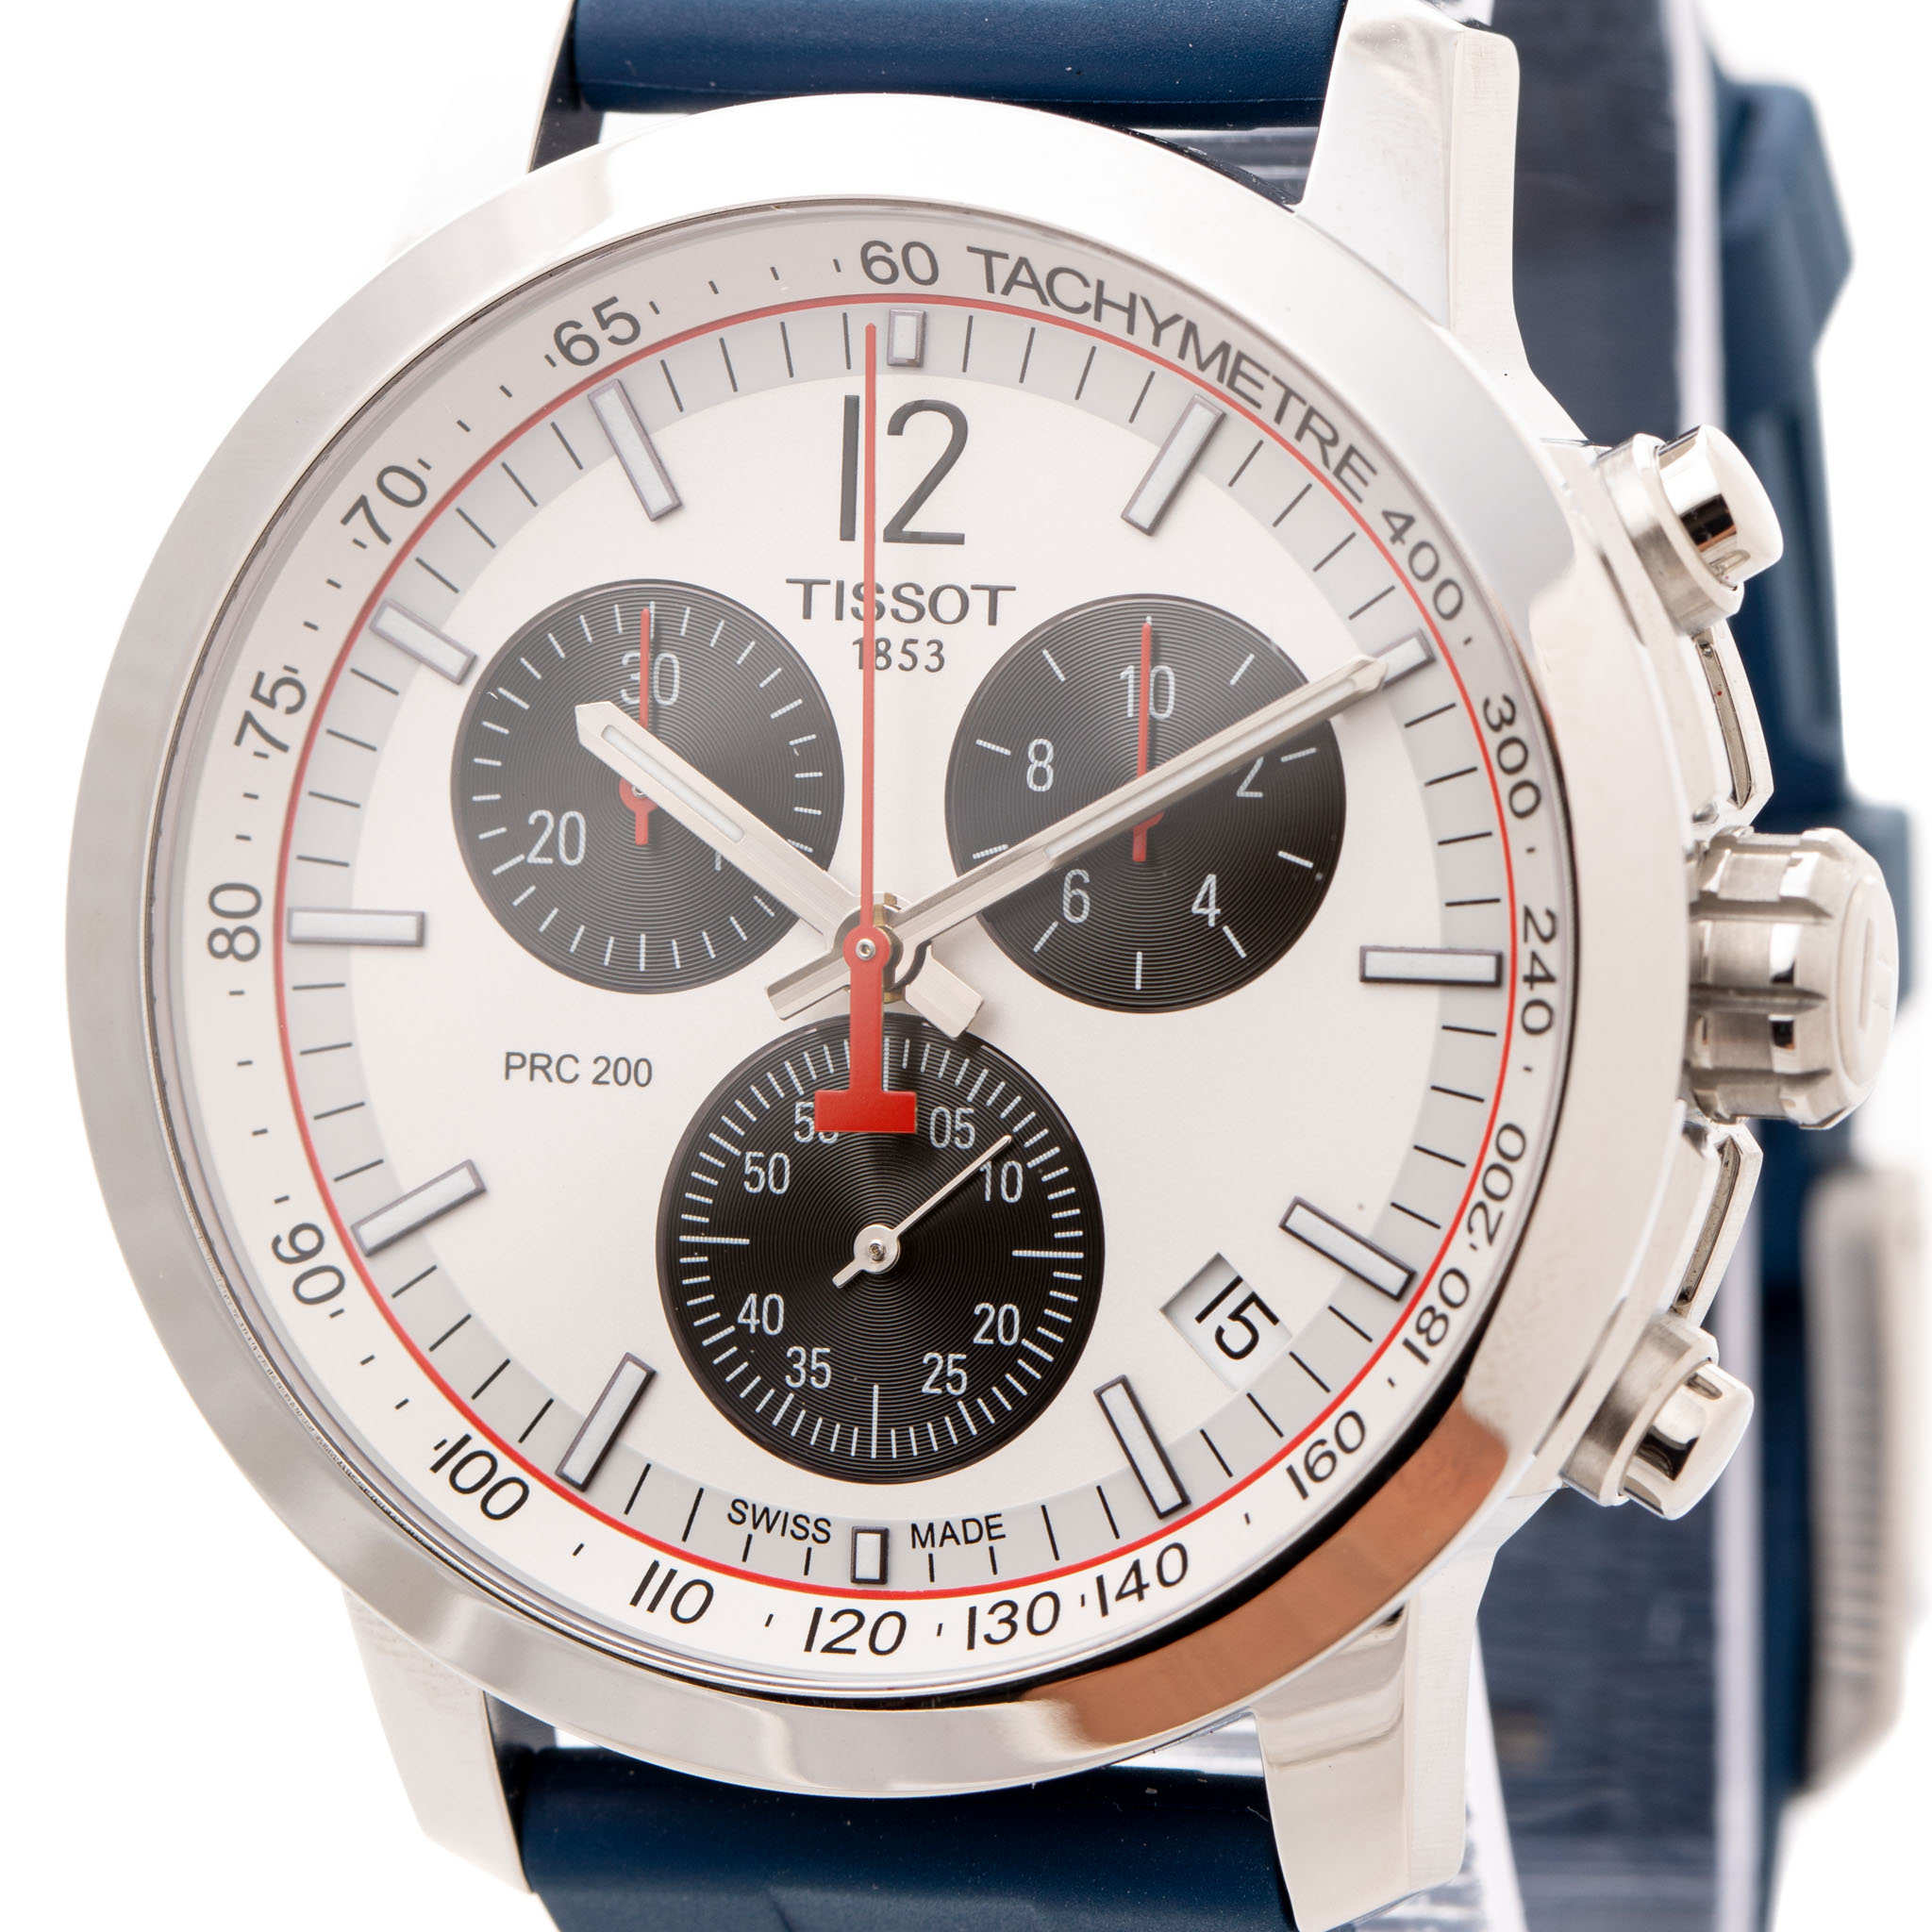 TISSOT PRC 200 SPECIAL EDITION 42MM CHRONOGRAPH WHITE DIAL REF: T114.417